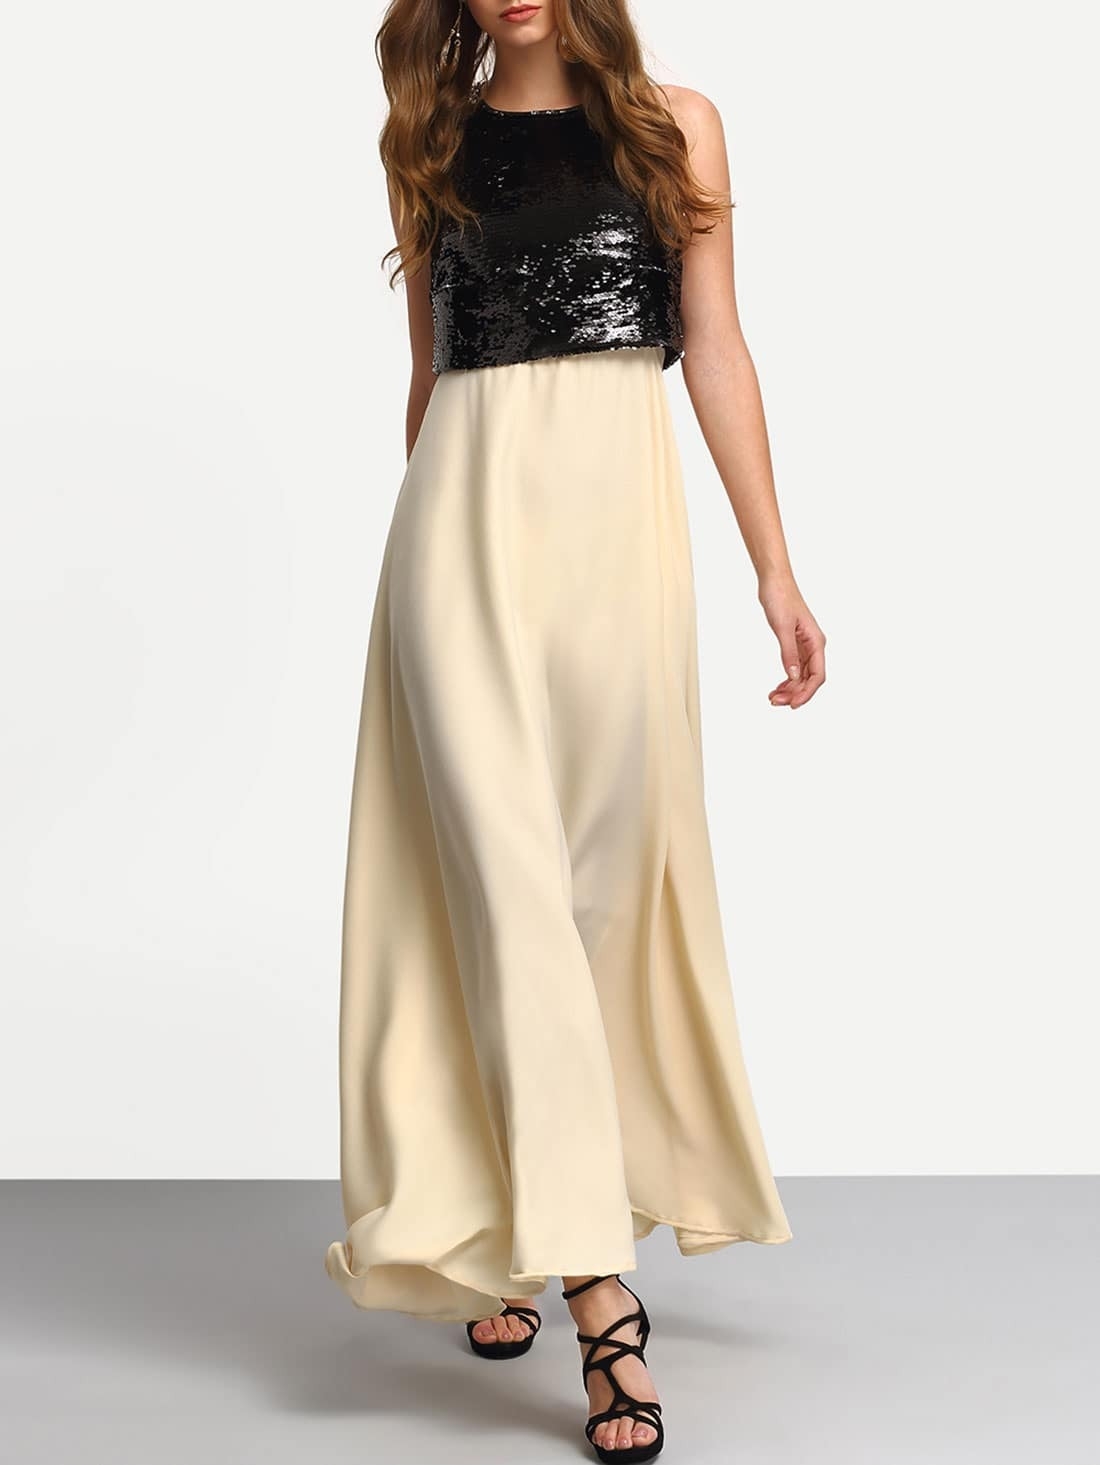 Black Apricot Sequined Splicing Flare Maxi Dress -SheIn(Sheinside)